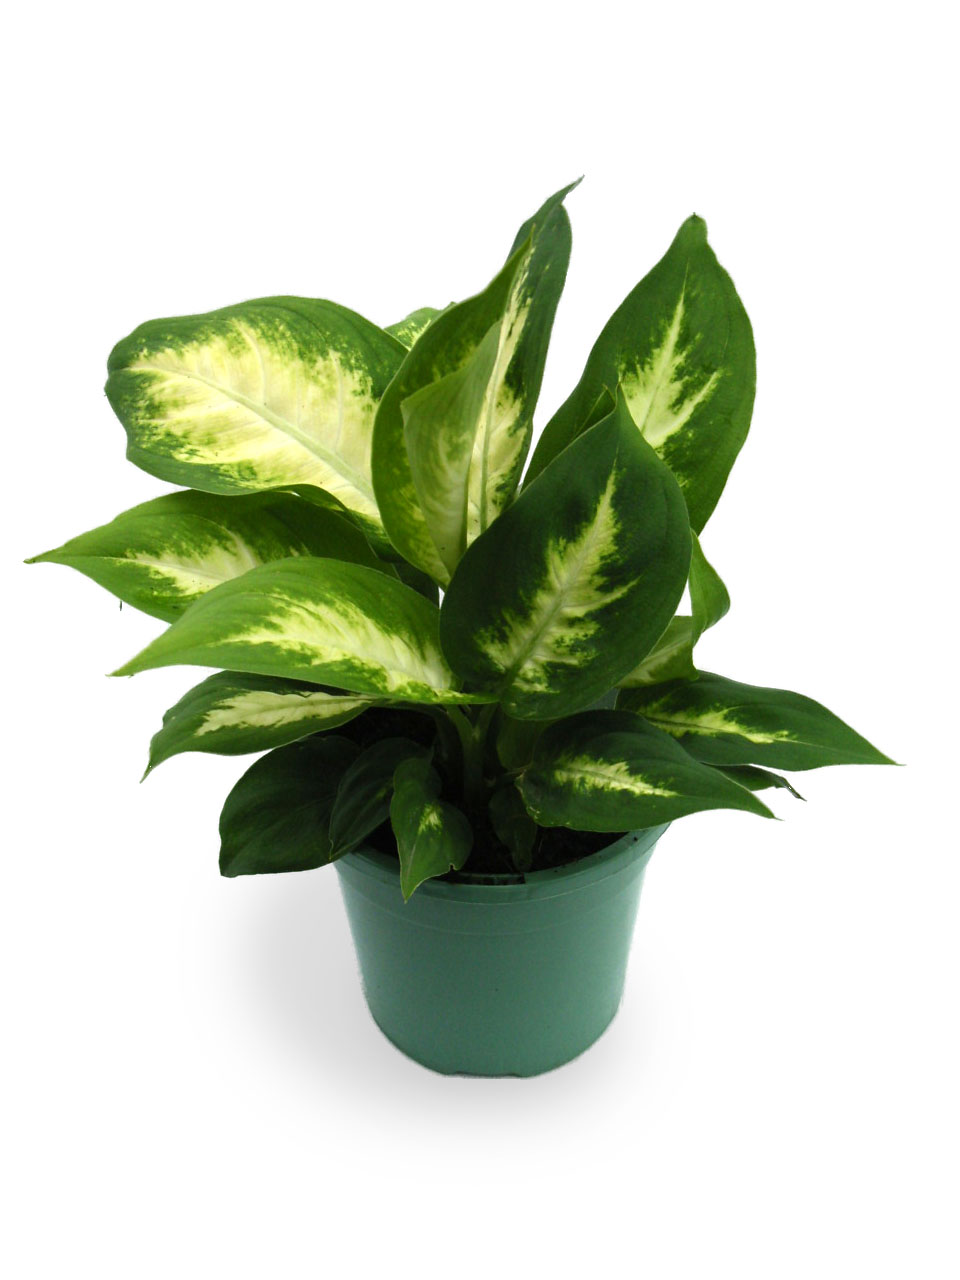 Plants & Flowers » ffenbachia seguine on names of house buildings, names of dracaena plants, names of plants inside, names of dry plants, names of office plants, indoor plants, names of herbaceous perennials, names of different houseplants, scientific names of plants, names of gifts, names of unusual plants, names of flowers, names of landscape plants, names of elephant ear plants, names of hibiscus, names of seashore plants, names of climbers, names of fuchsias, names of house design, names of angel plants,